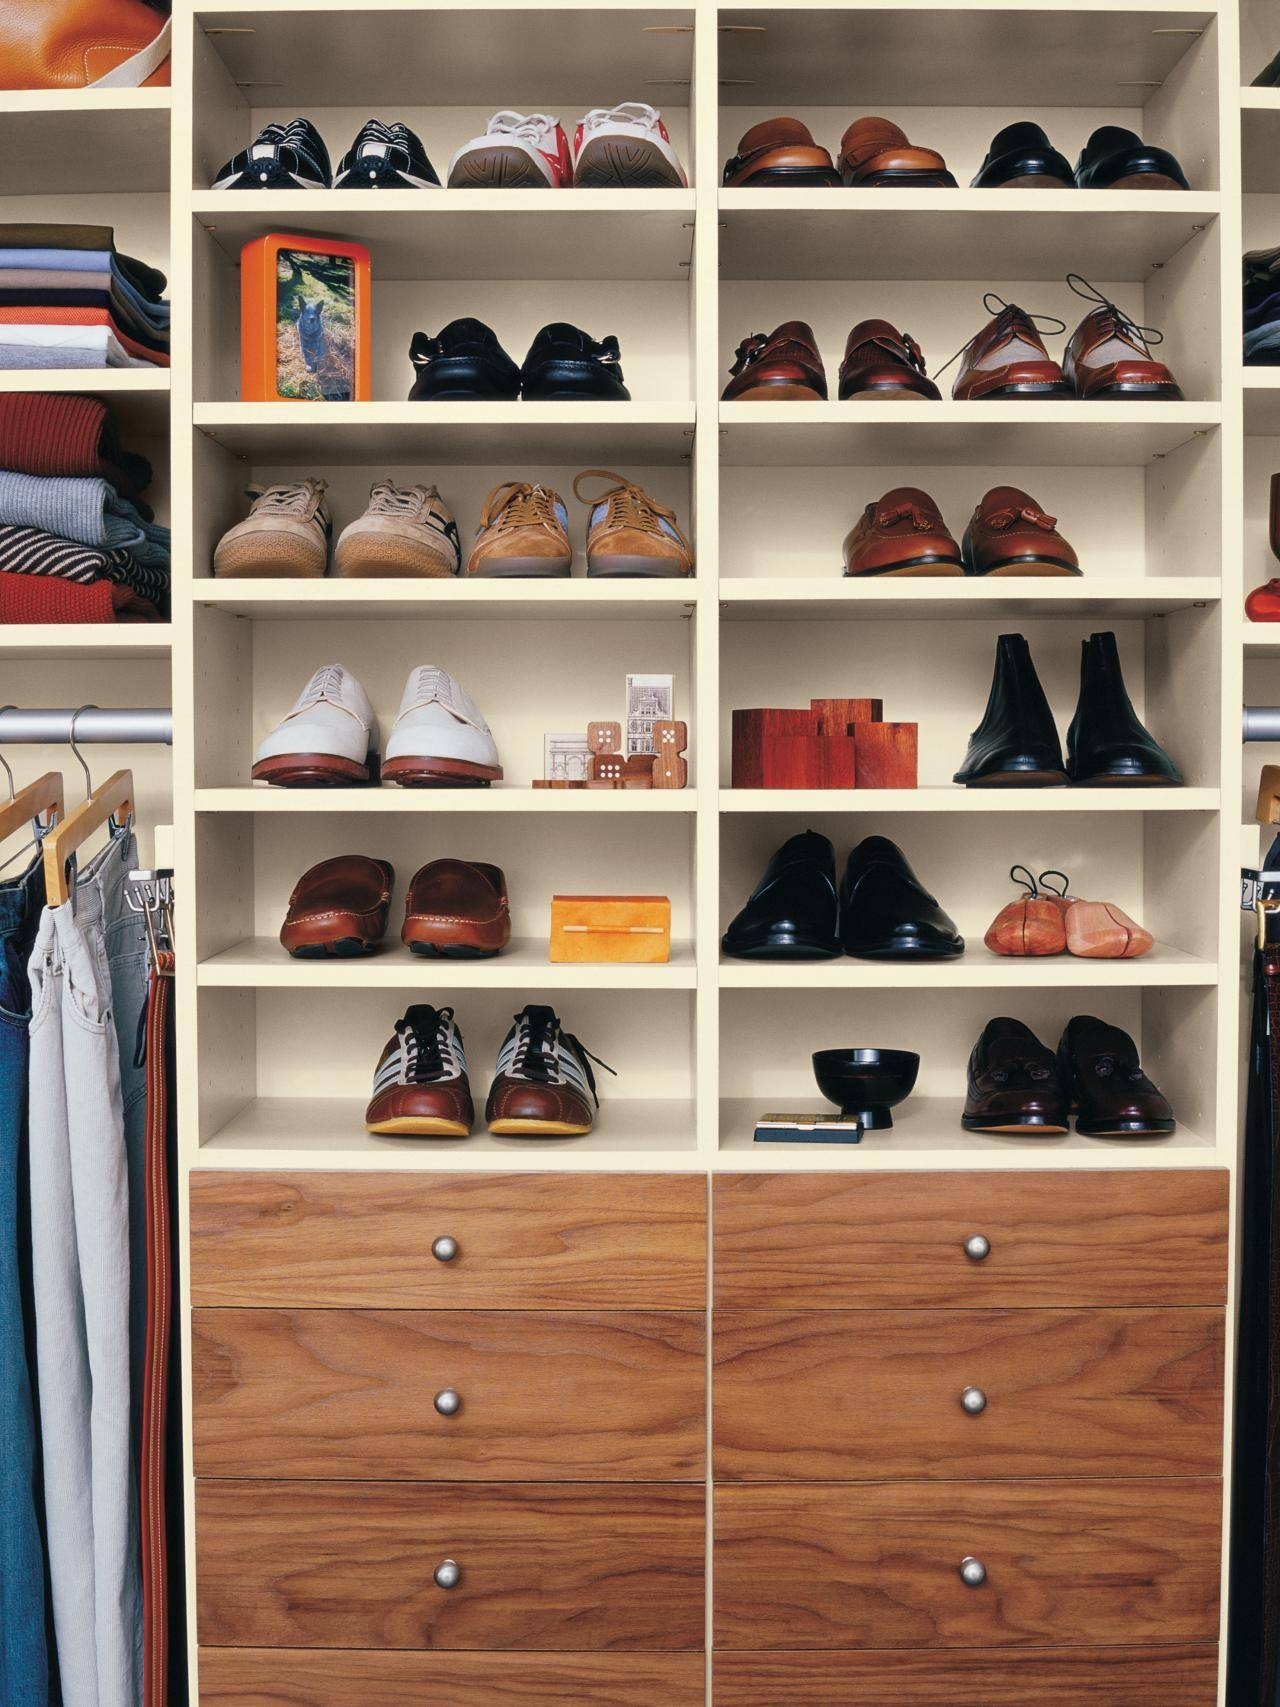 All About Drawers And Shelves | Hgtv throughout Drawers And Shelves For Wardrobes (Image 3 of 30)